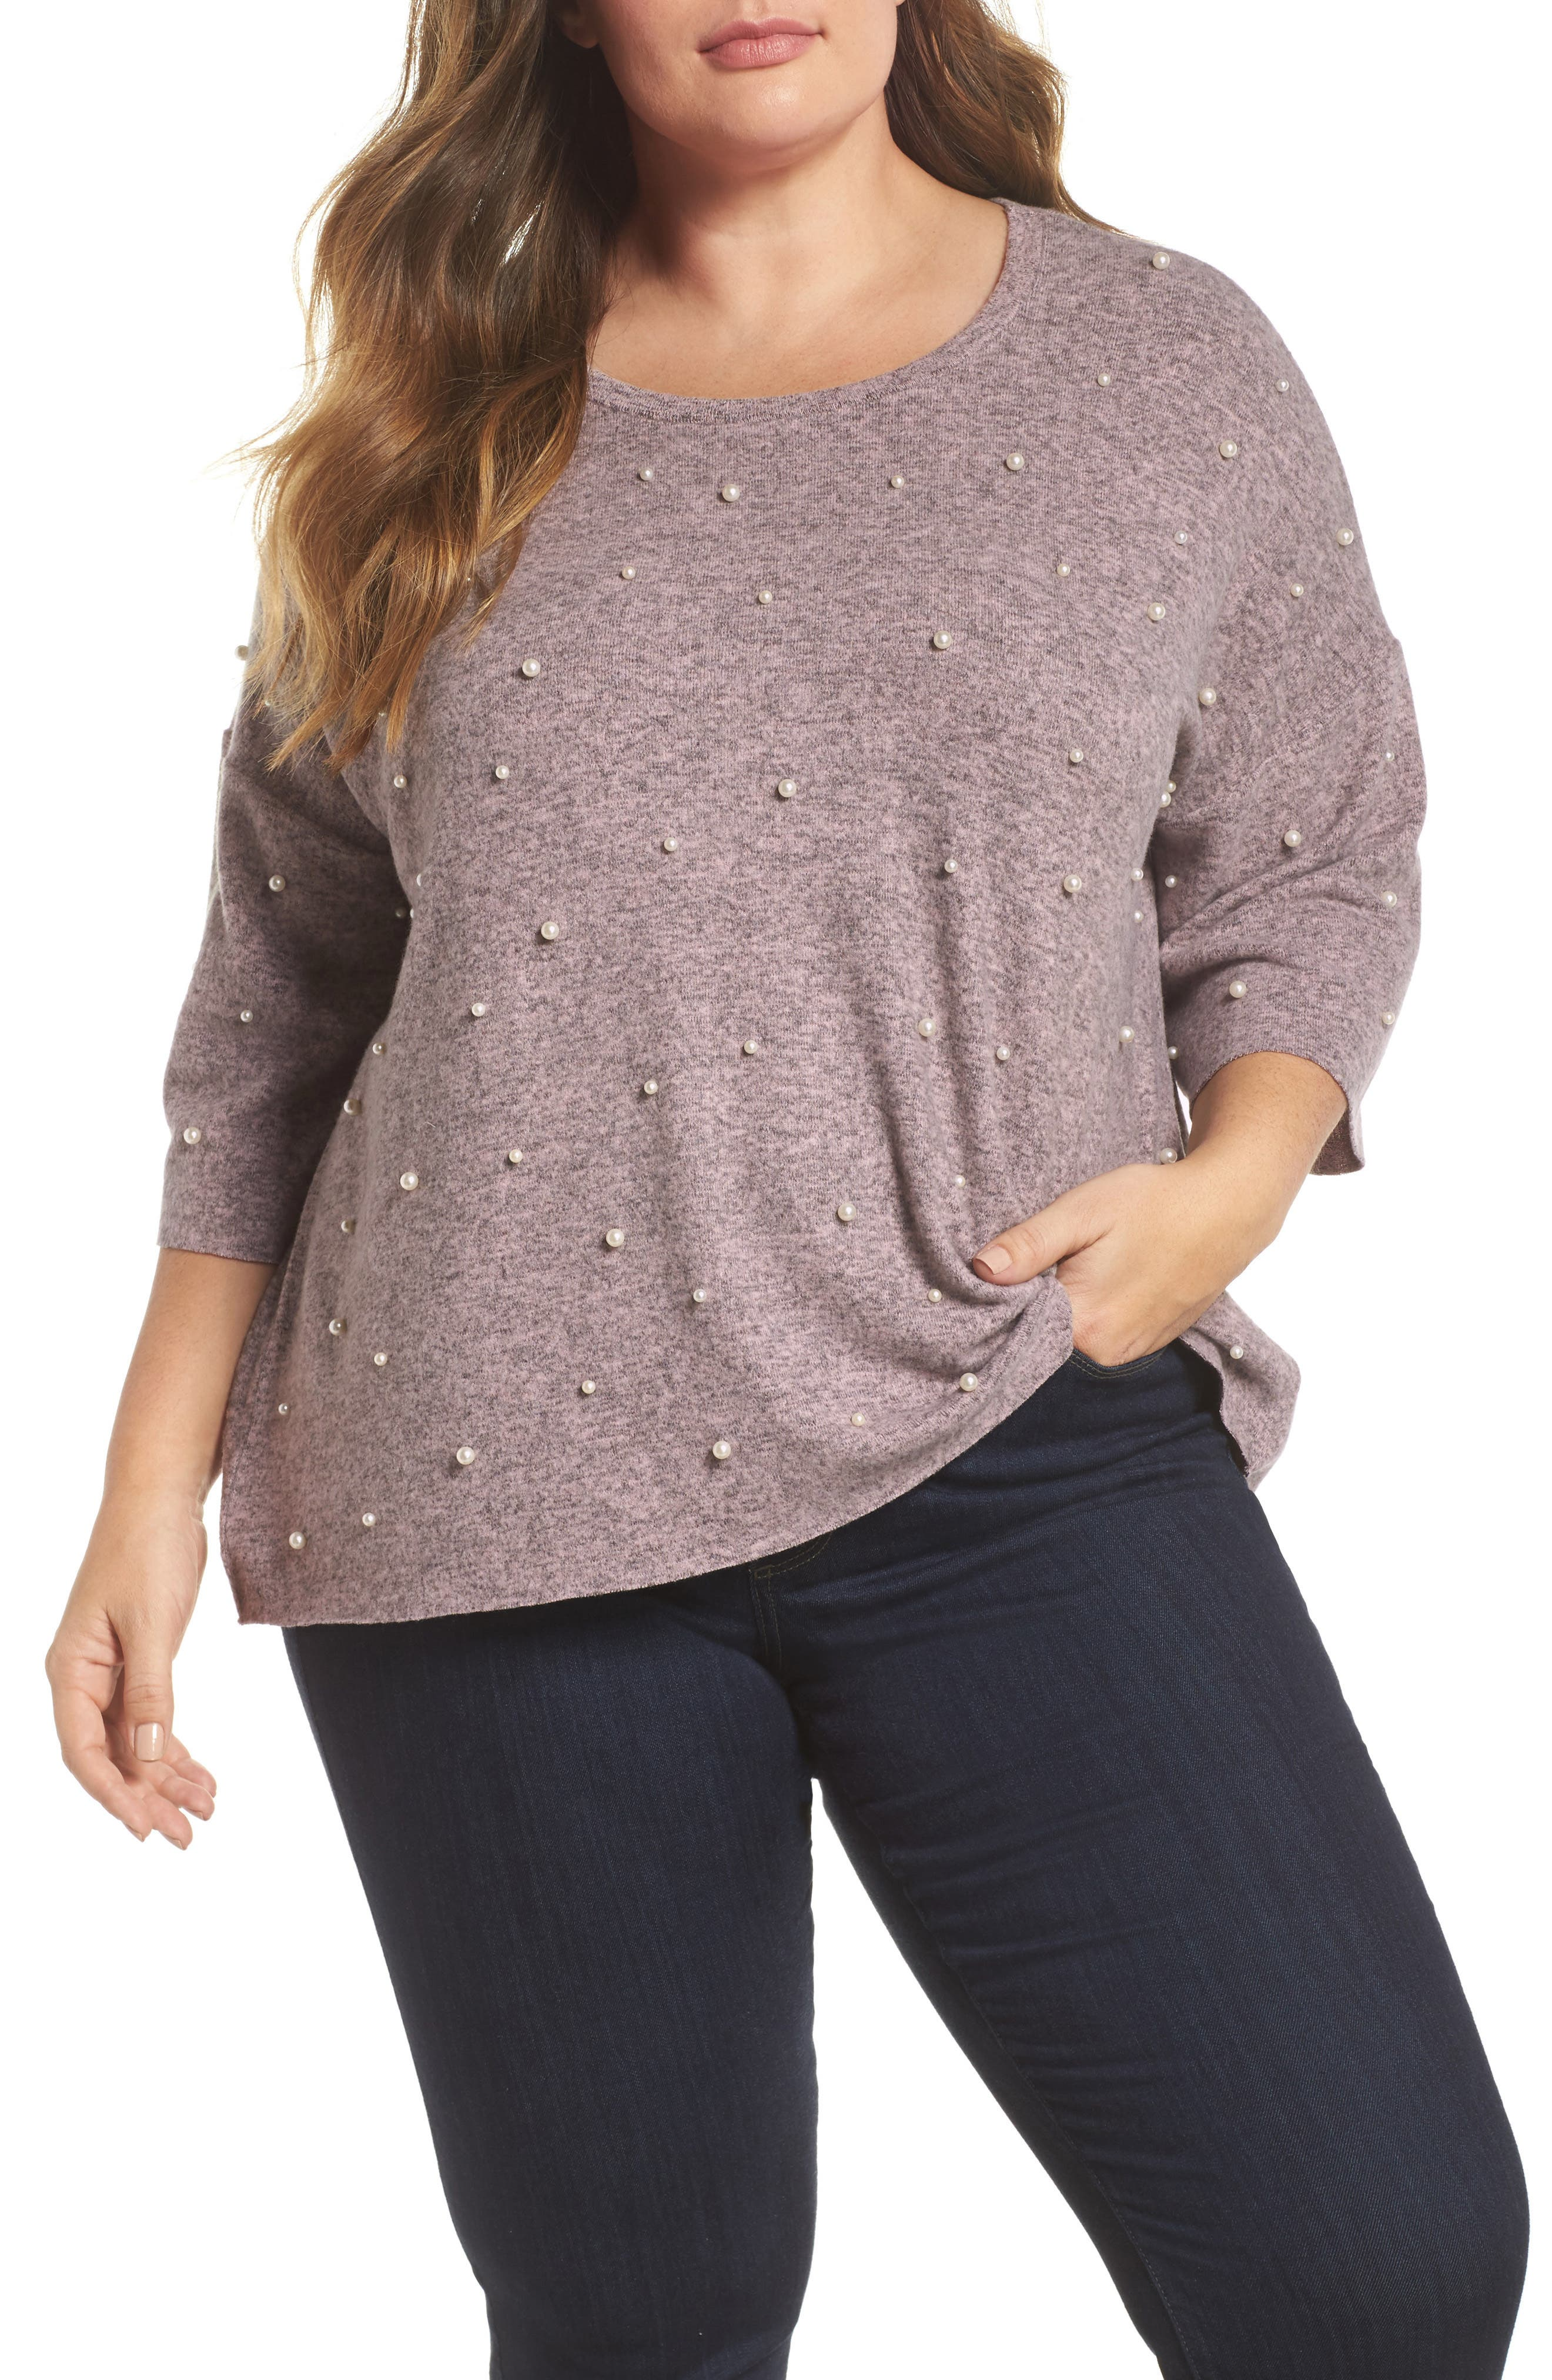 Pearl Embellished Sweater,                             Main thumbnail 1, color,                             020